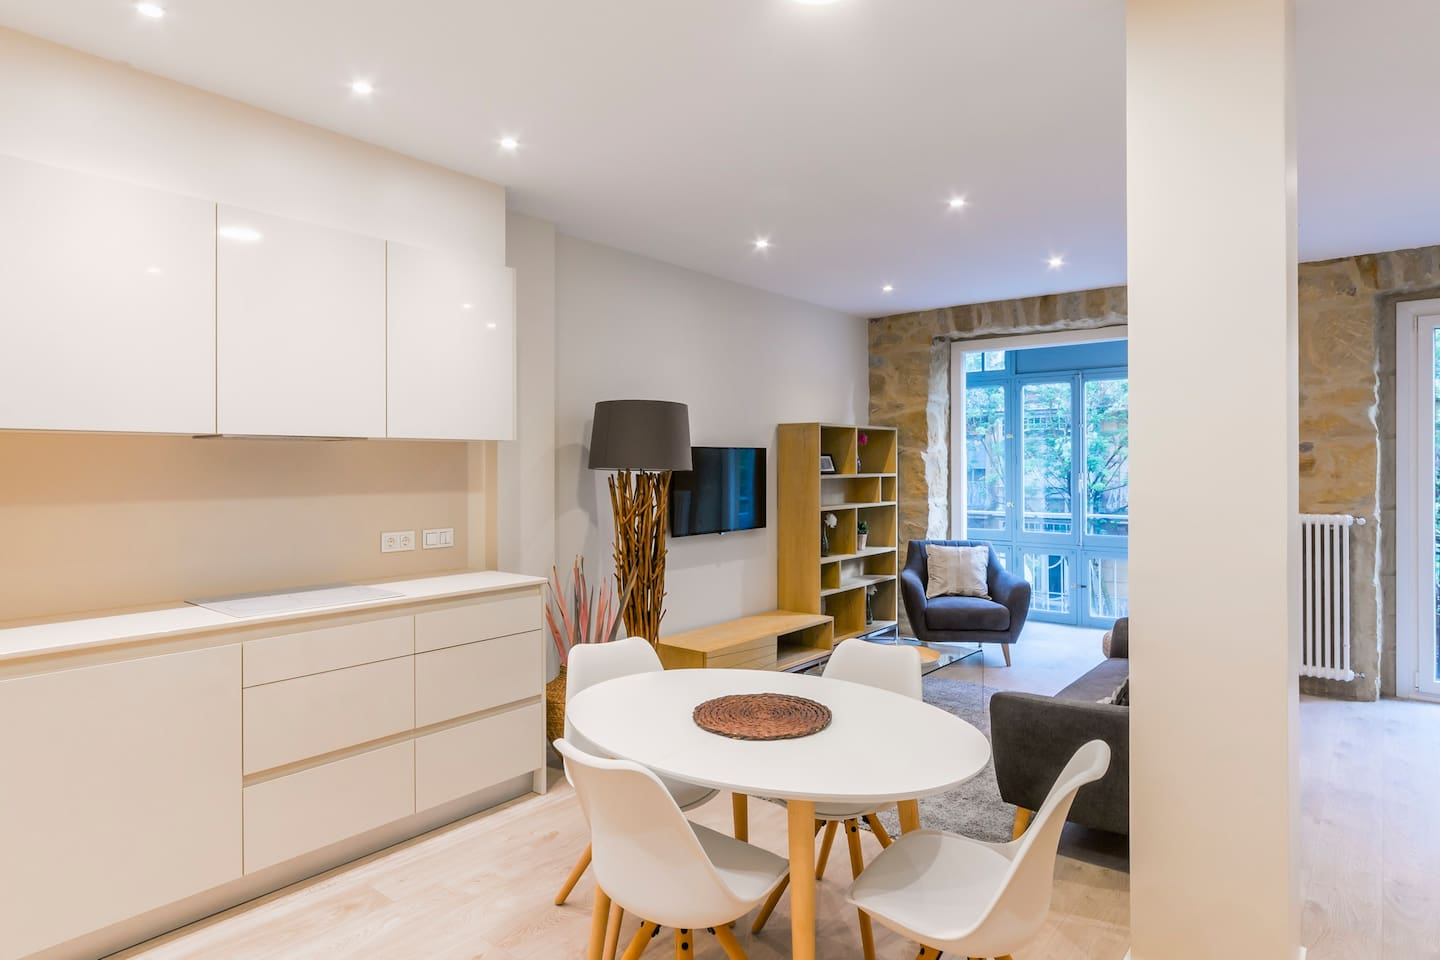 Muebles Riu San Sebastian - Apartamento Bellas Artes 1 Apartments For Rent In Donostia [mjhdah]https://a0.muscache.com/im/pictures/50825187/a78afd96_original.jpg?aki_policy=xx_large